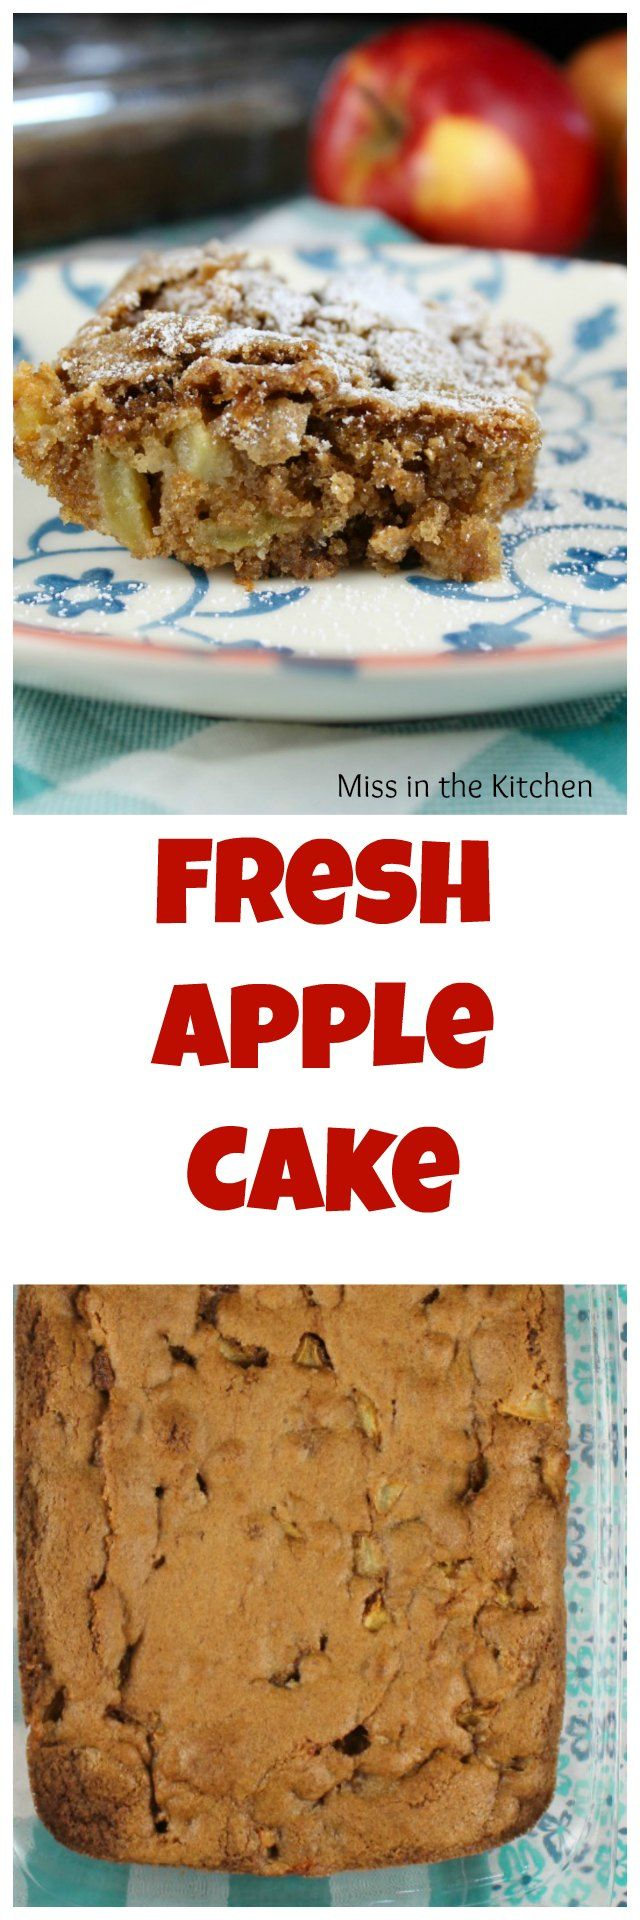 Fresh Apple Cake Recipe is a family favorite dessert with fresh apples and cinnamon. From MissintheKitchen.com